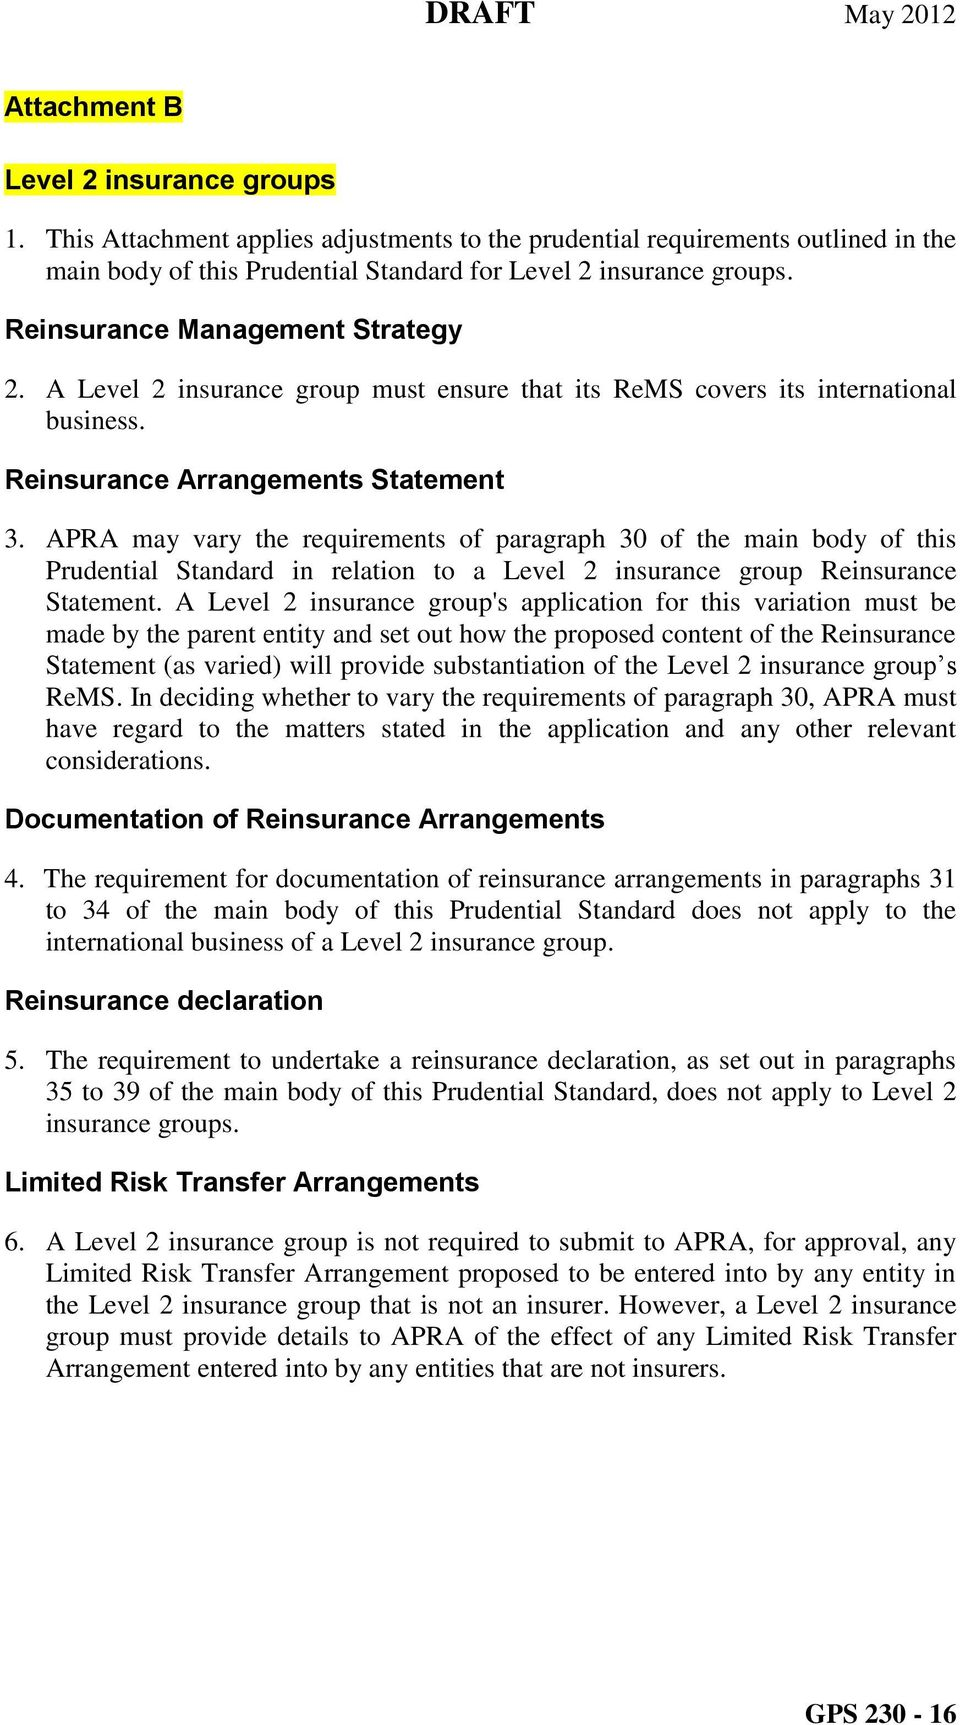 APRA may vary the requirements of paragraph 30 of the main body of this Prudential Standard in relation to a Level 2 insurance group Reinsurance Statement.